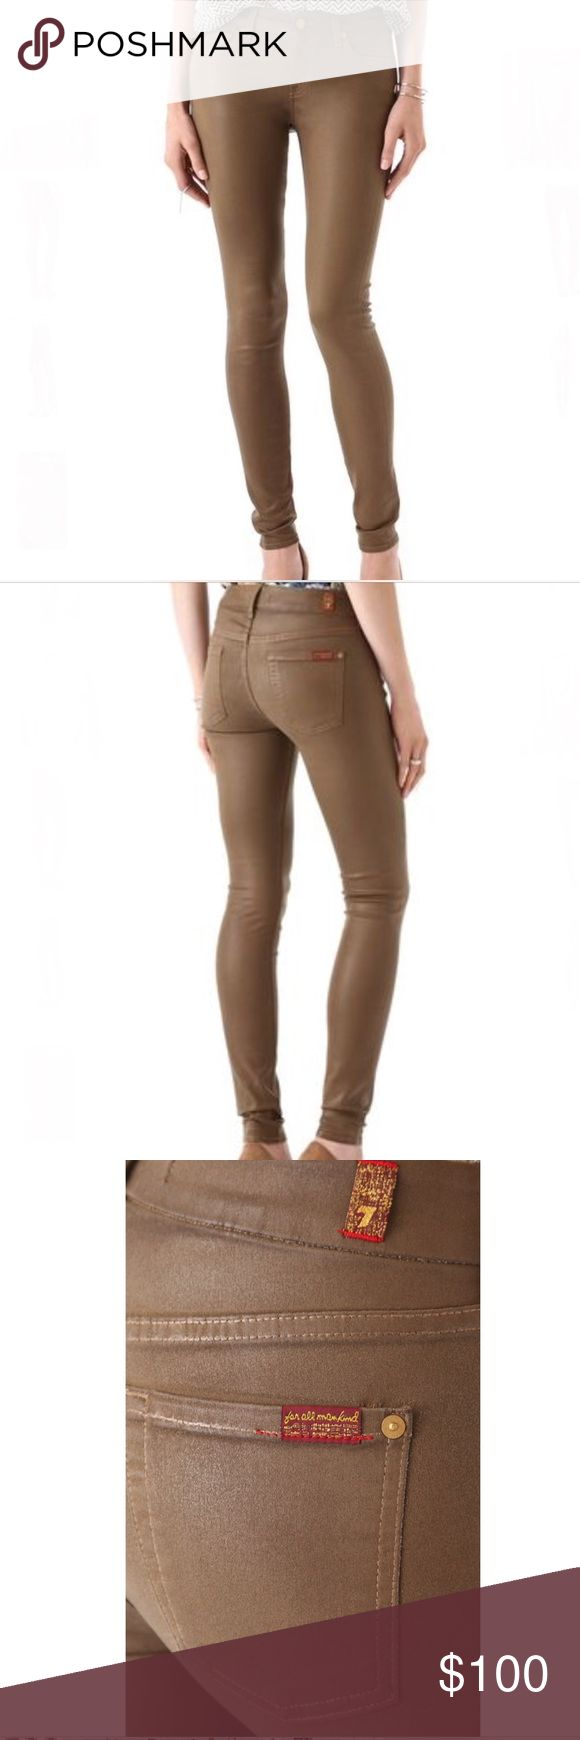 """7 For All Mankind Coated Skinny Jeans By 7 For All Mankind. """"The Skinny High Shine Gummy"""" in Sepia Brown. Stretchy, legging-weight gummy denim. Leather-like coating. Classic five-pocket style. NWOT - never worn. 7 For All Mankind Jeans Skinny"""